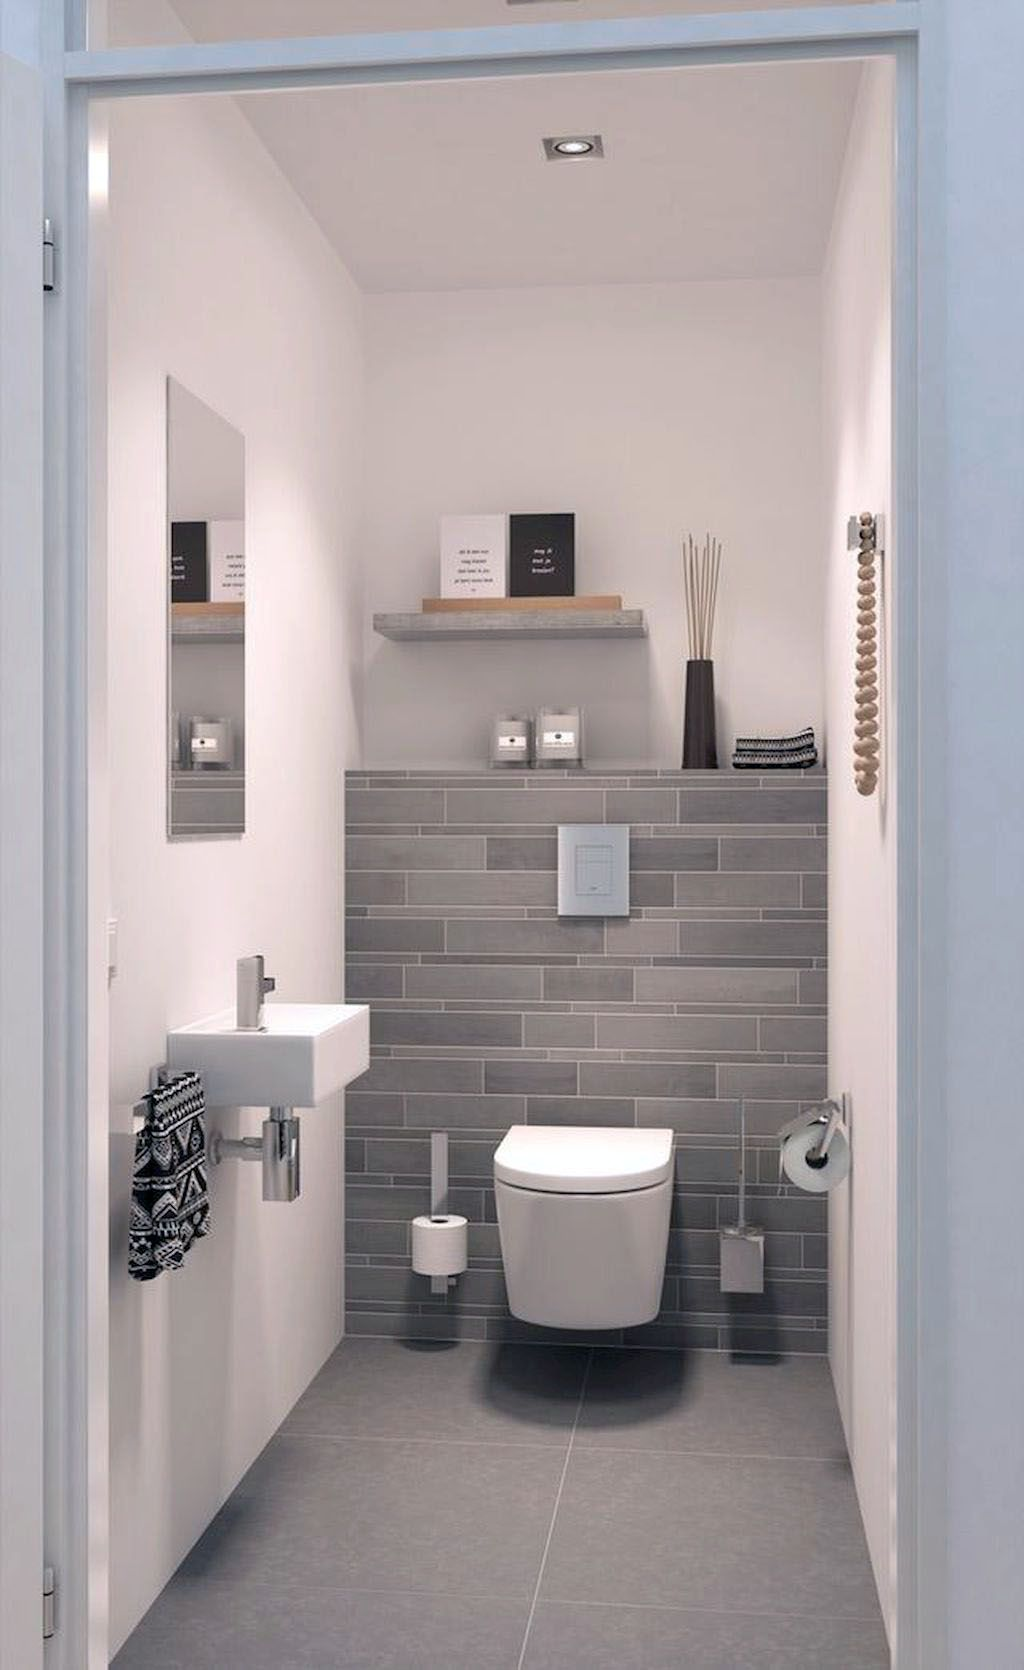 6 Bathrooms With Amazing Tile Flooring (With images) | Toilet ...